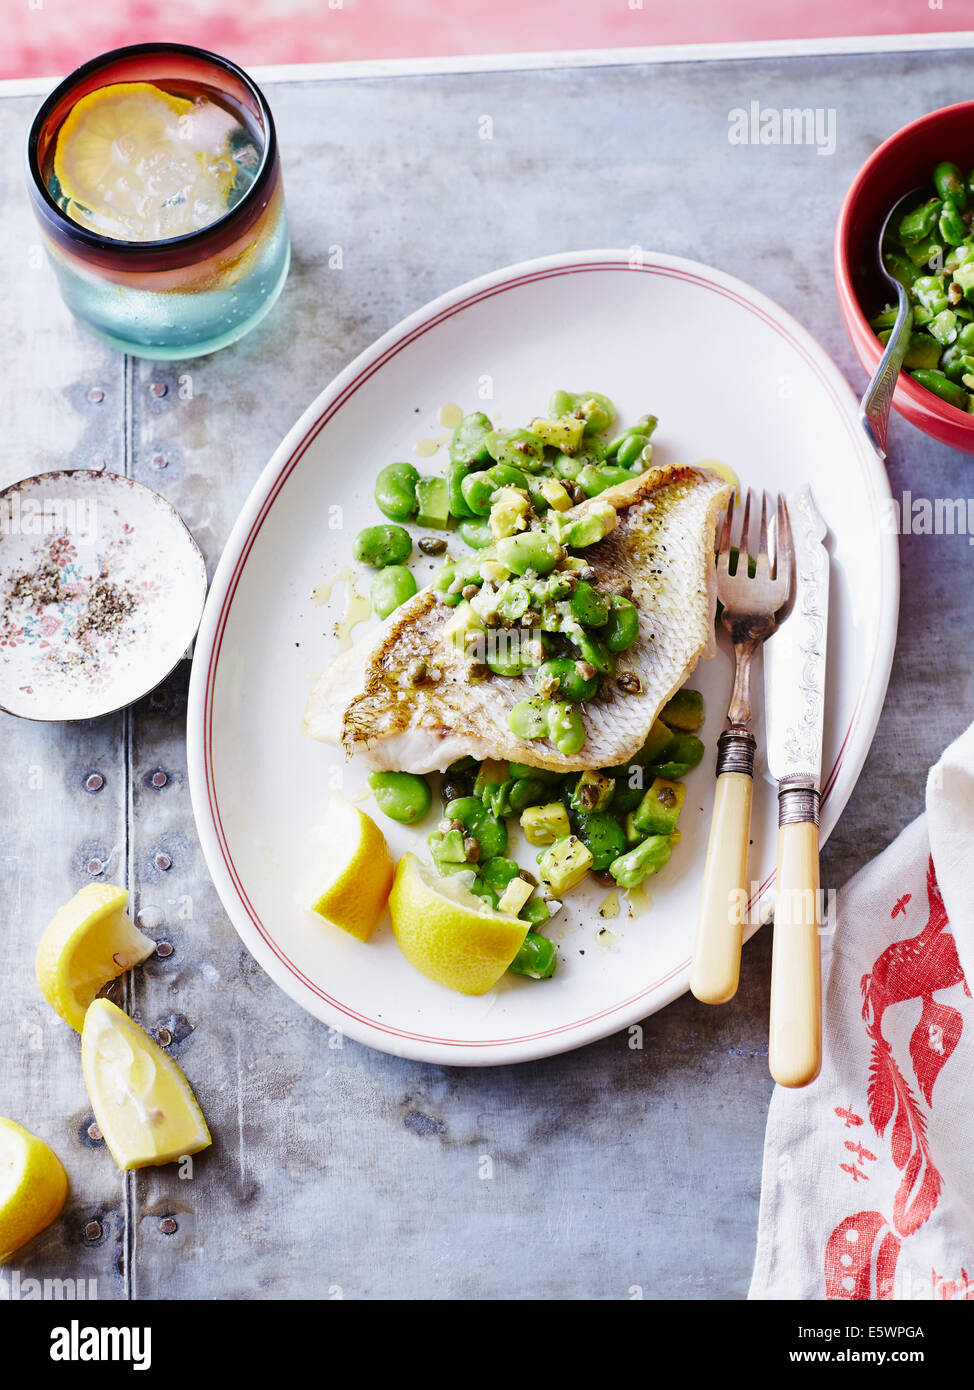 Steamed snapper fish with beans - Stock Photo